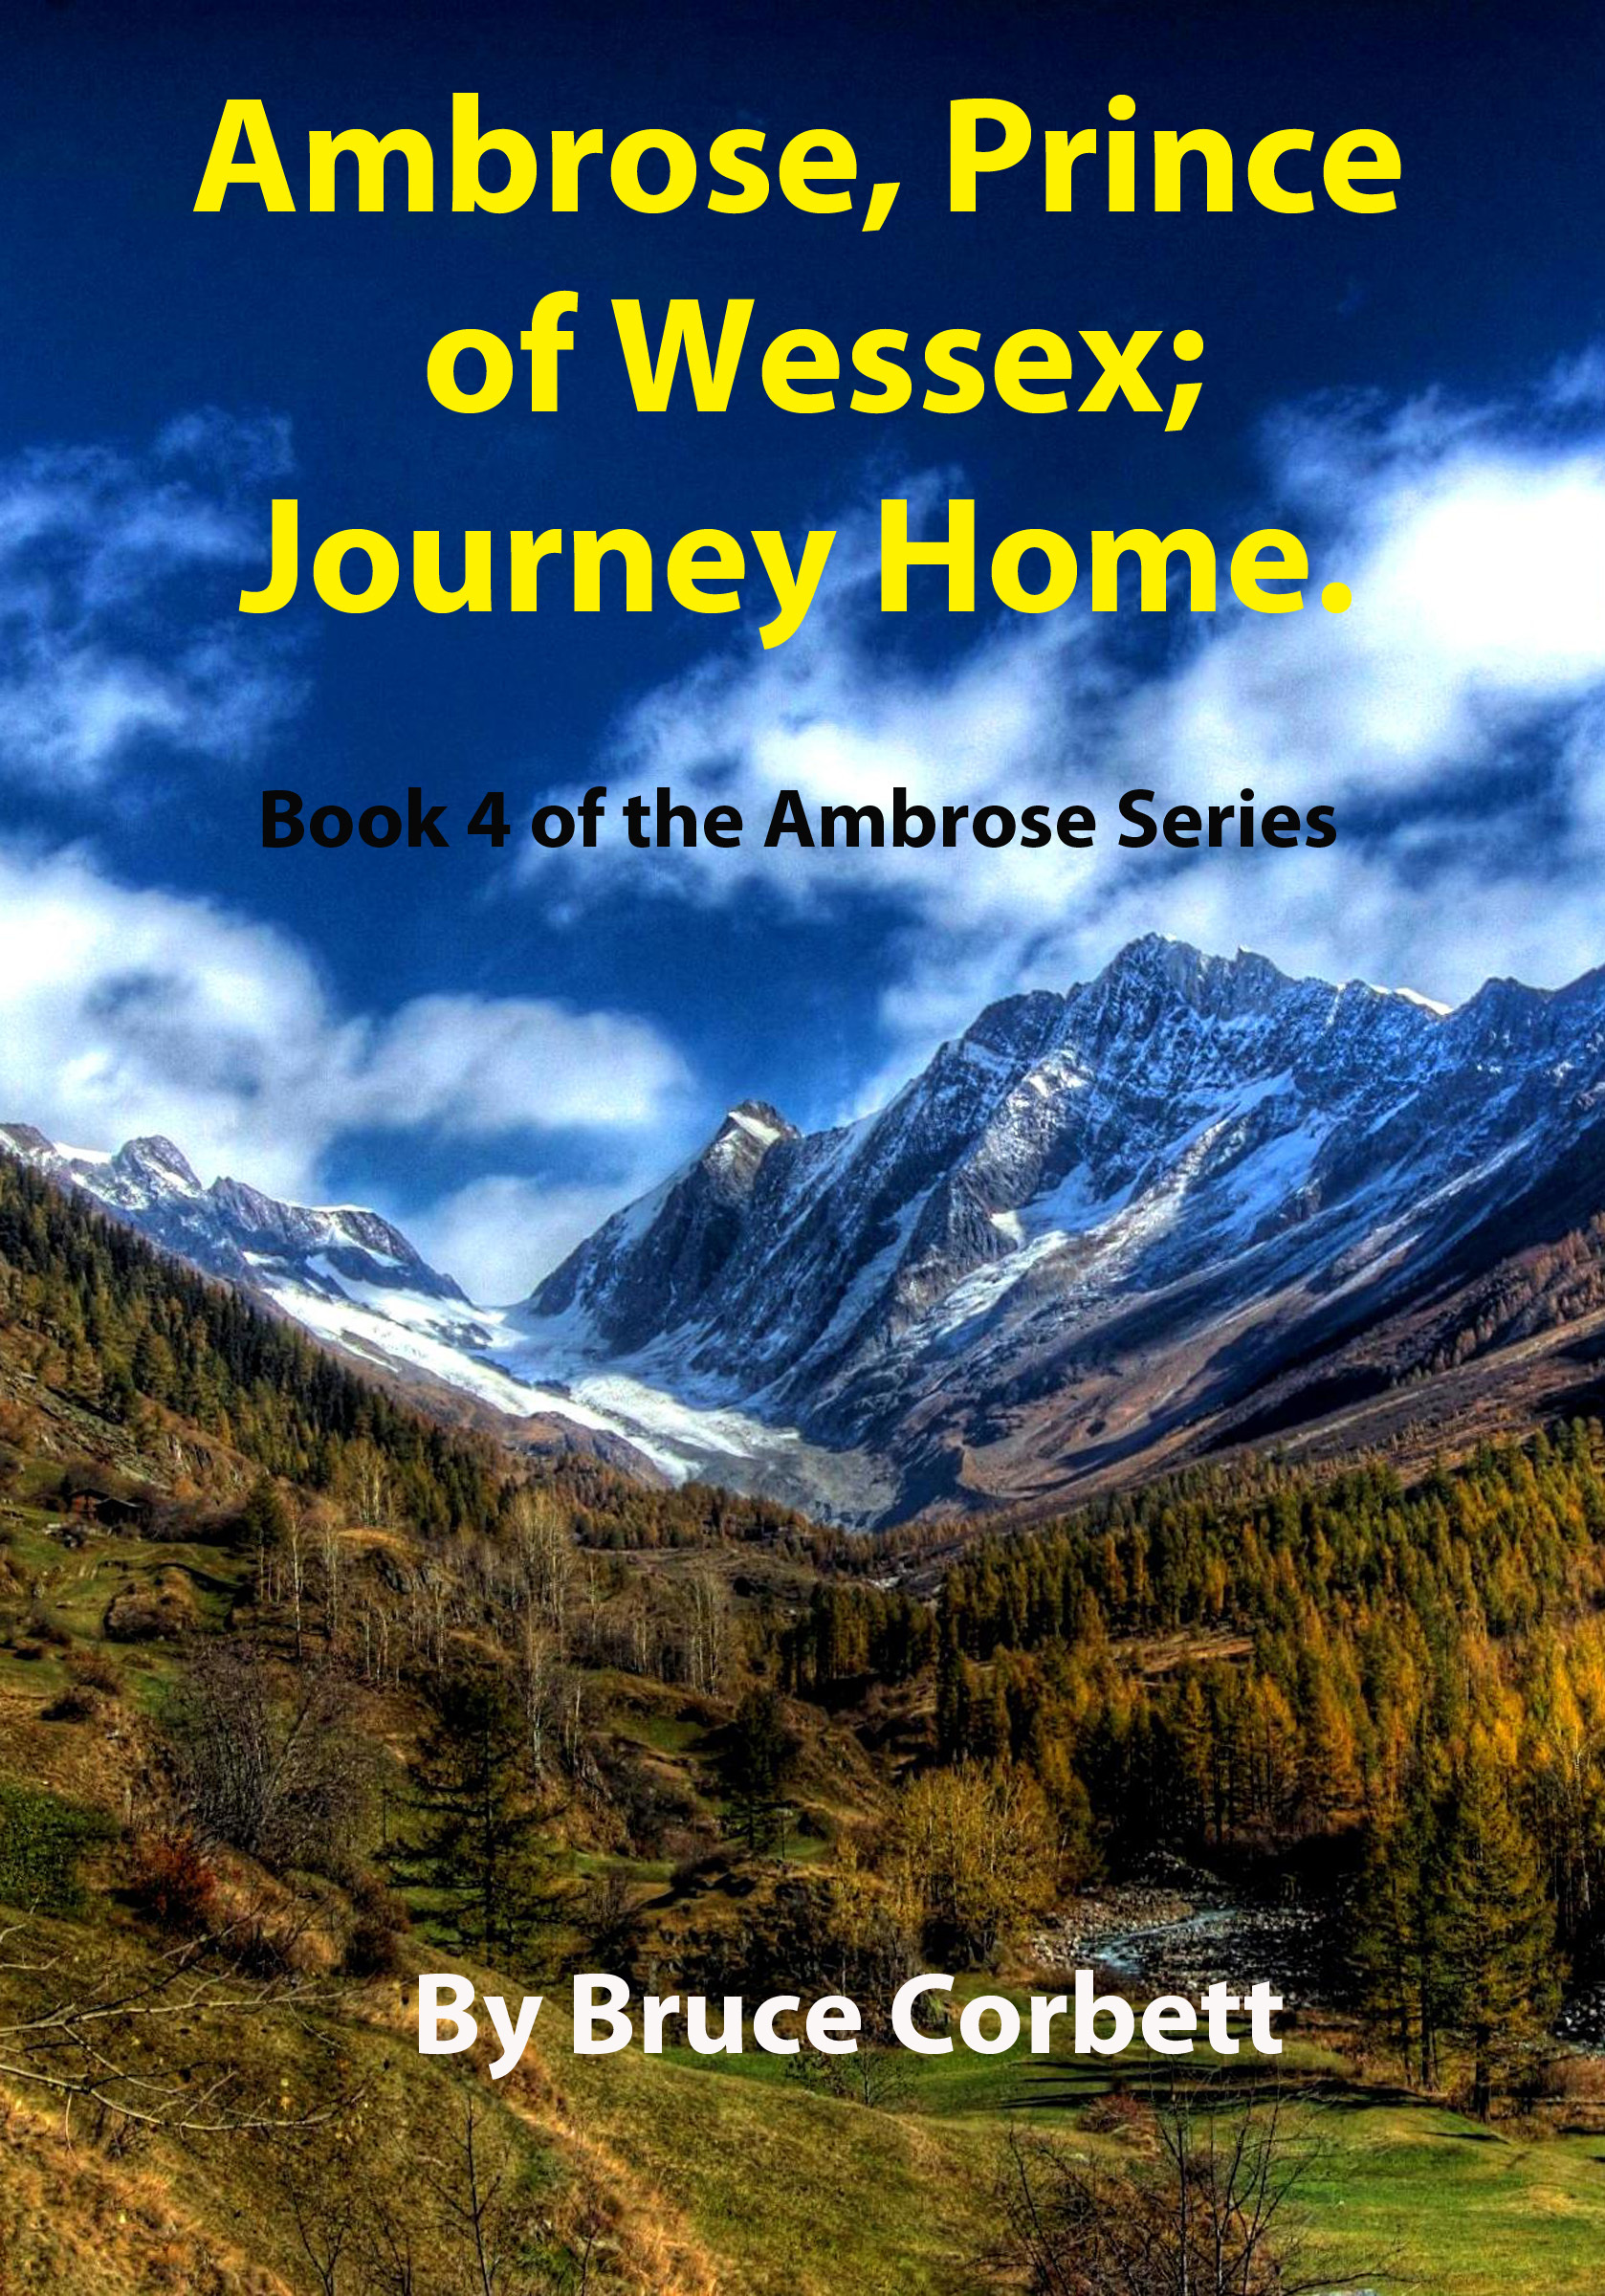 Ambrose, Prince of Wessex; Journey Home. By: Bruce Corbett